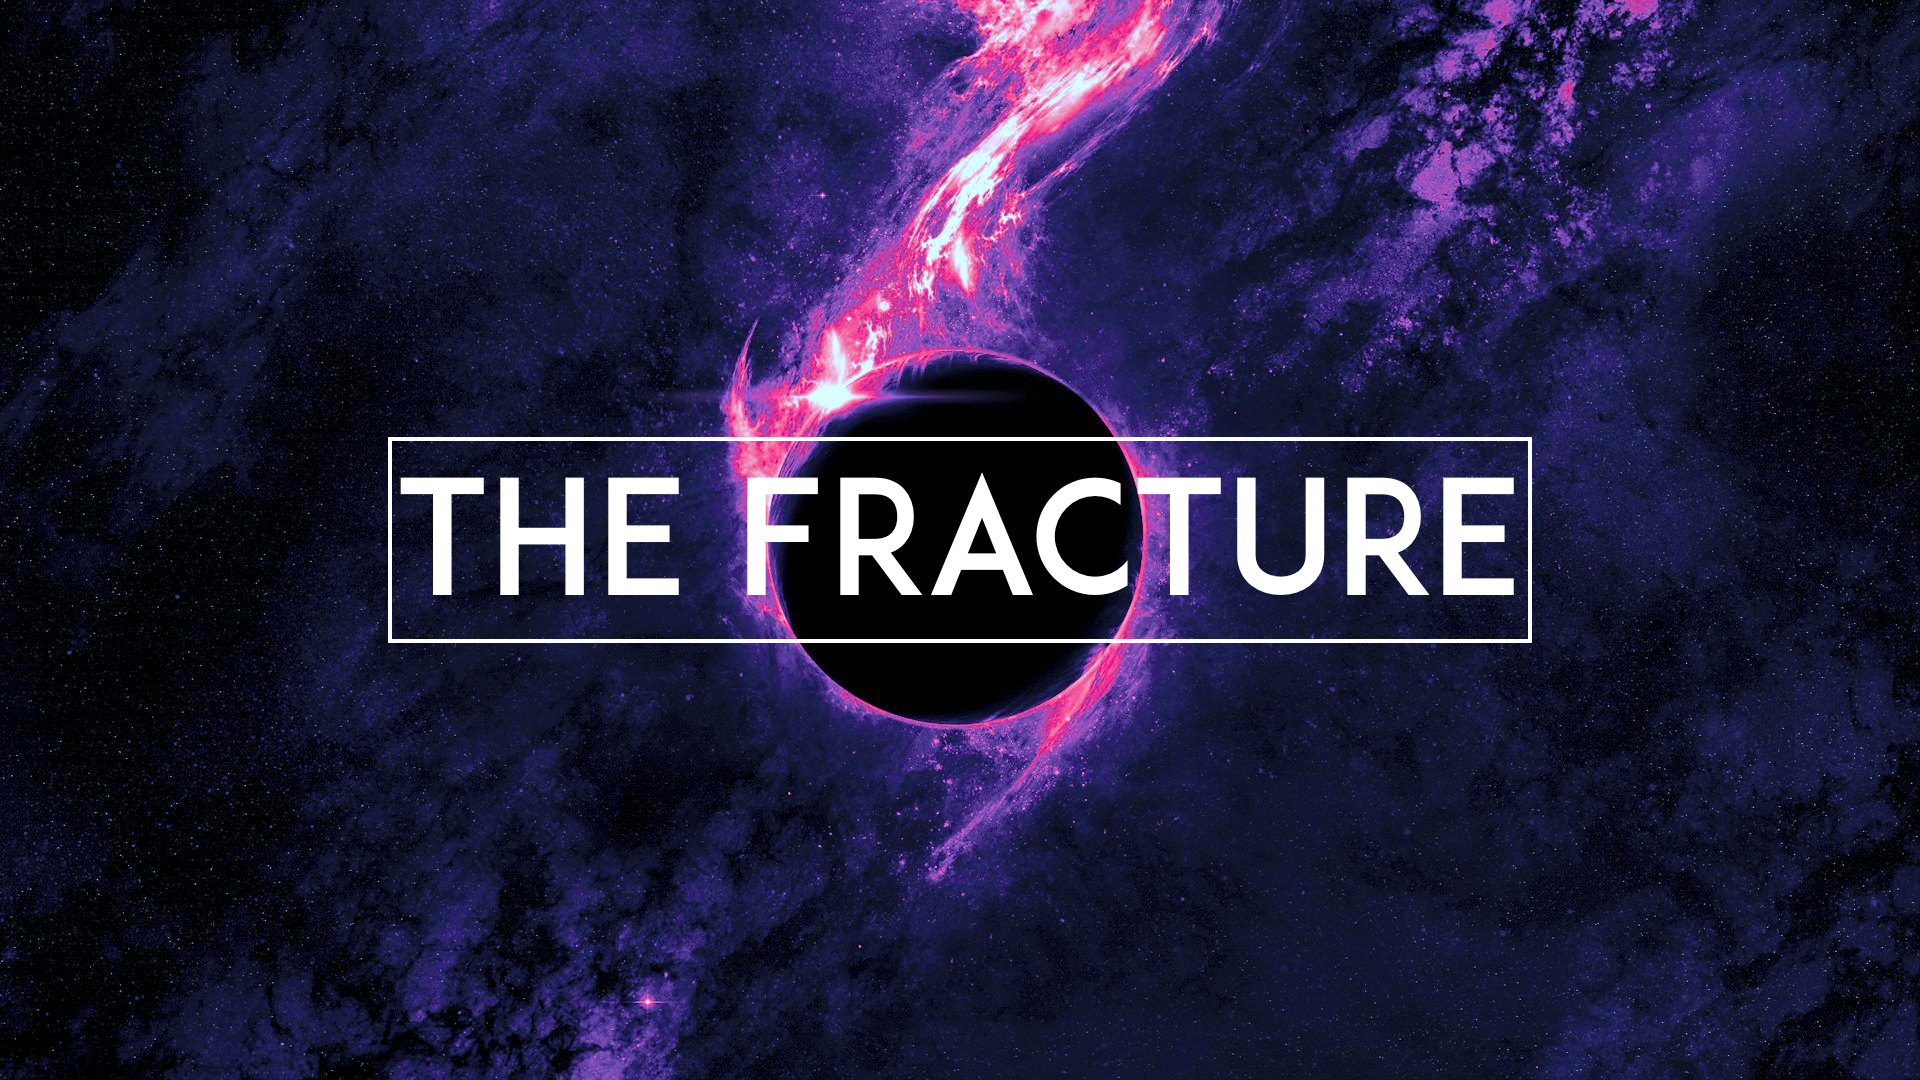 Thefracturecover